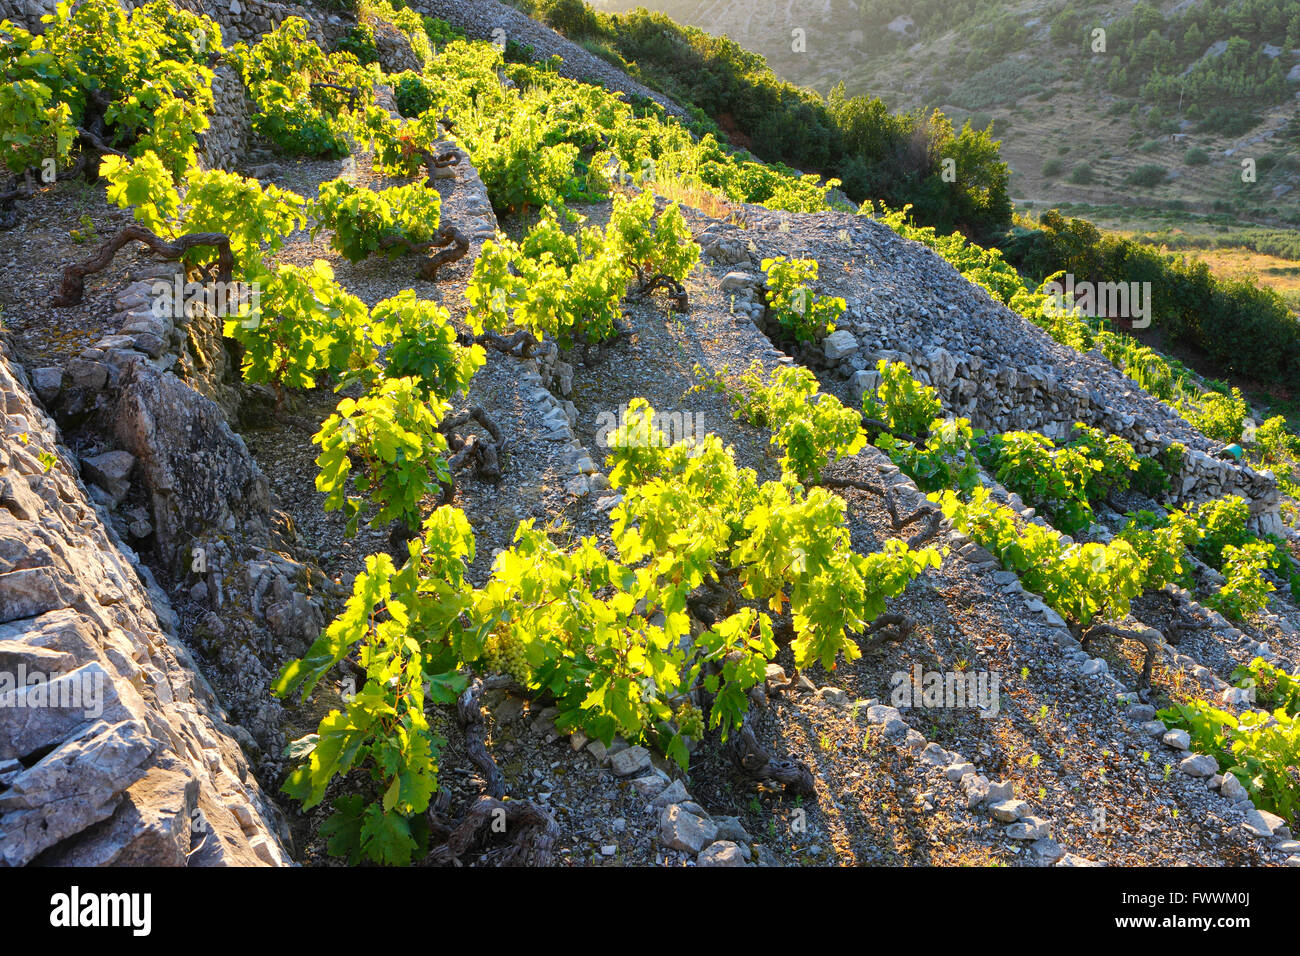 Vineyard on a steep slope, island Vis, Dalmatia - Croatia. - Stock Image